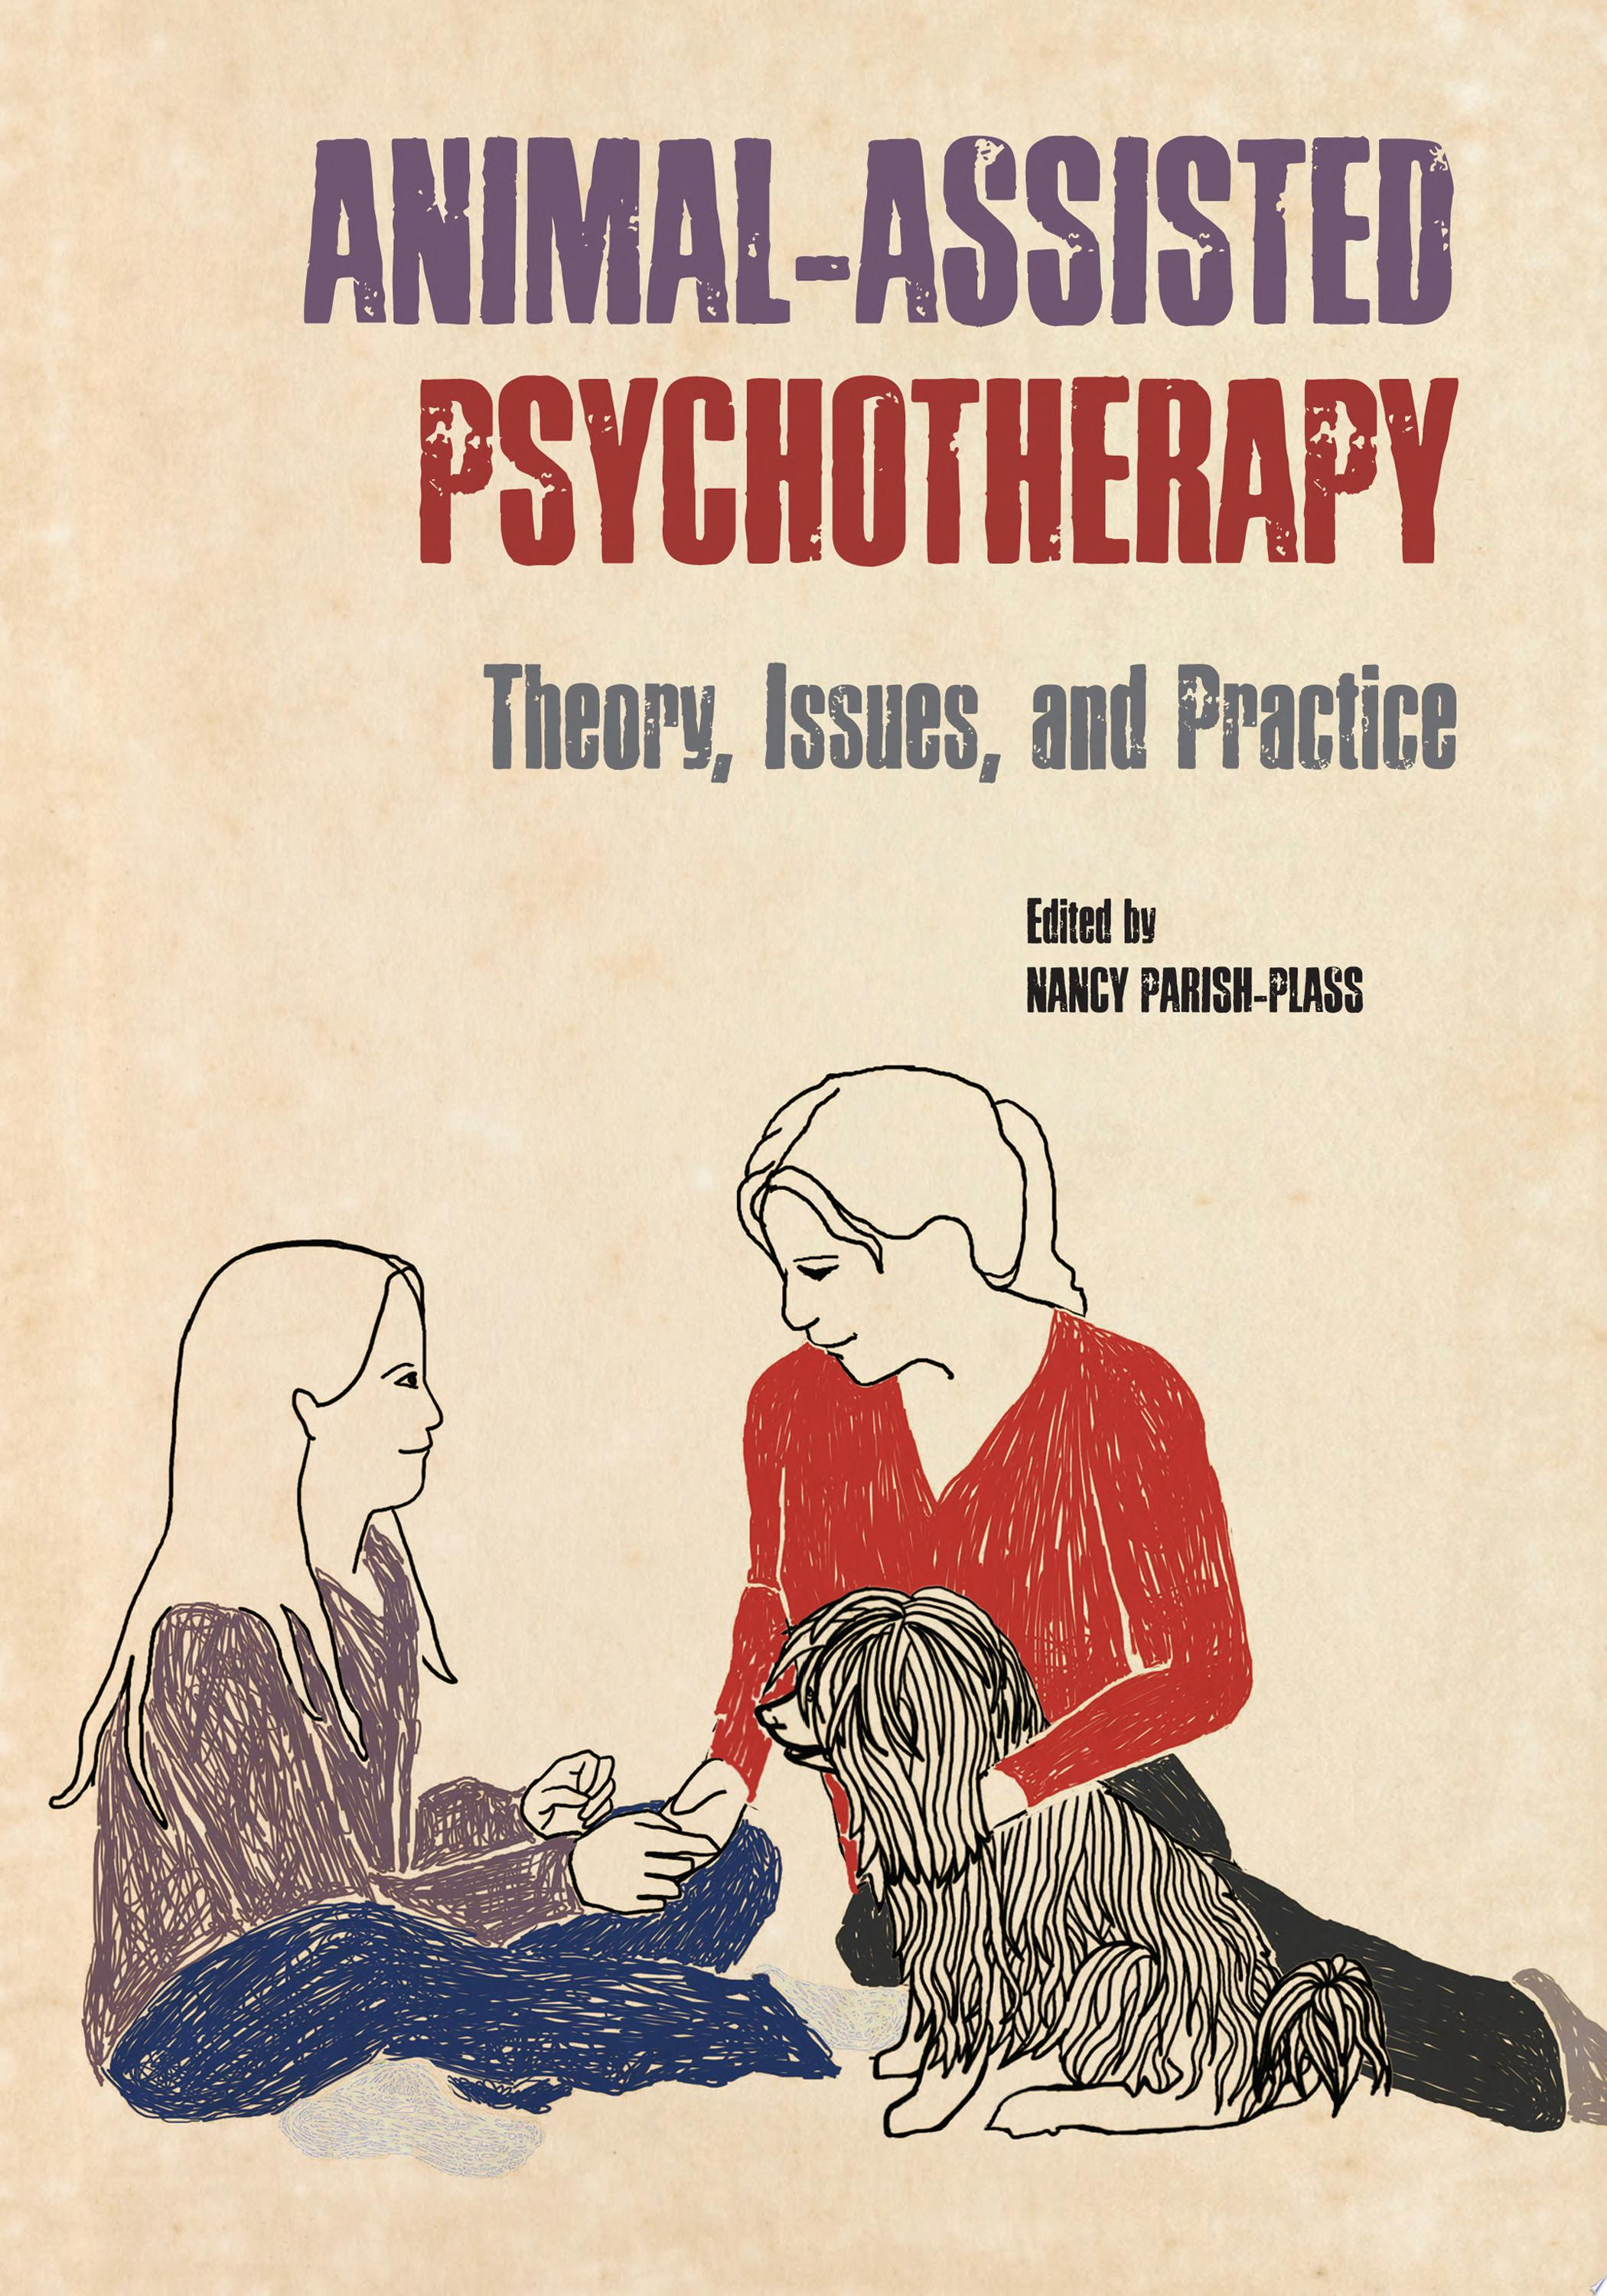 Animal assisted Psychotherapy